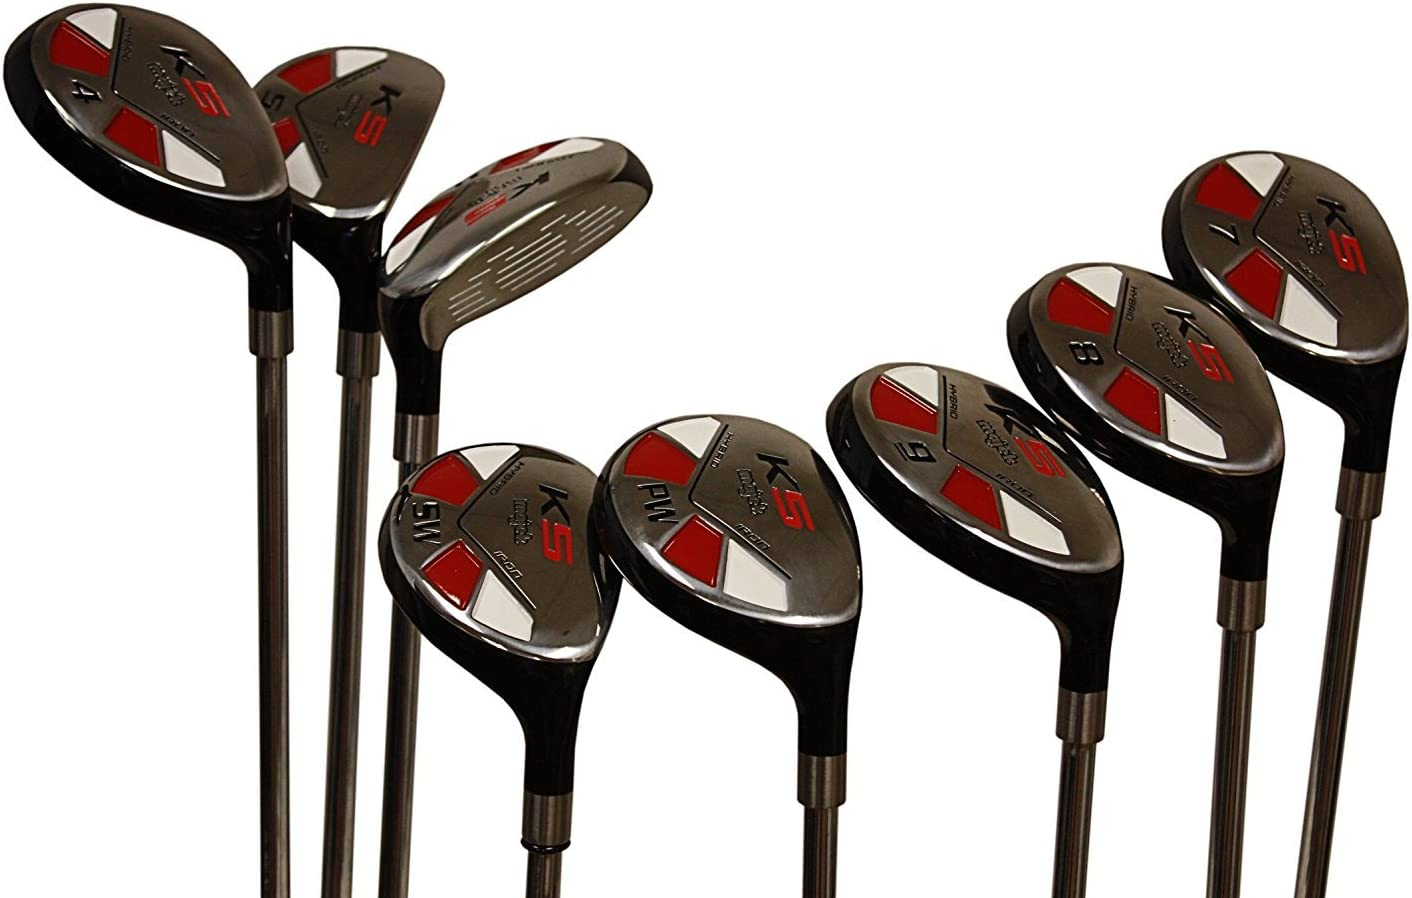 Women's Majek Golf All Ladies Hybrid Complete Full Set which Includes: #3 4 5 6 7 8 9 PW. Lady Flex Right Handed New Rescue Utility L Flex Club [並行輸入品]